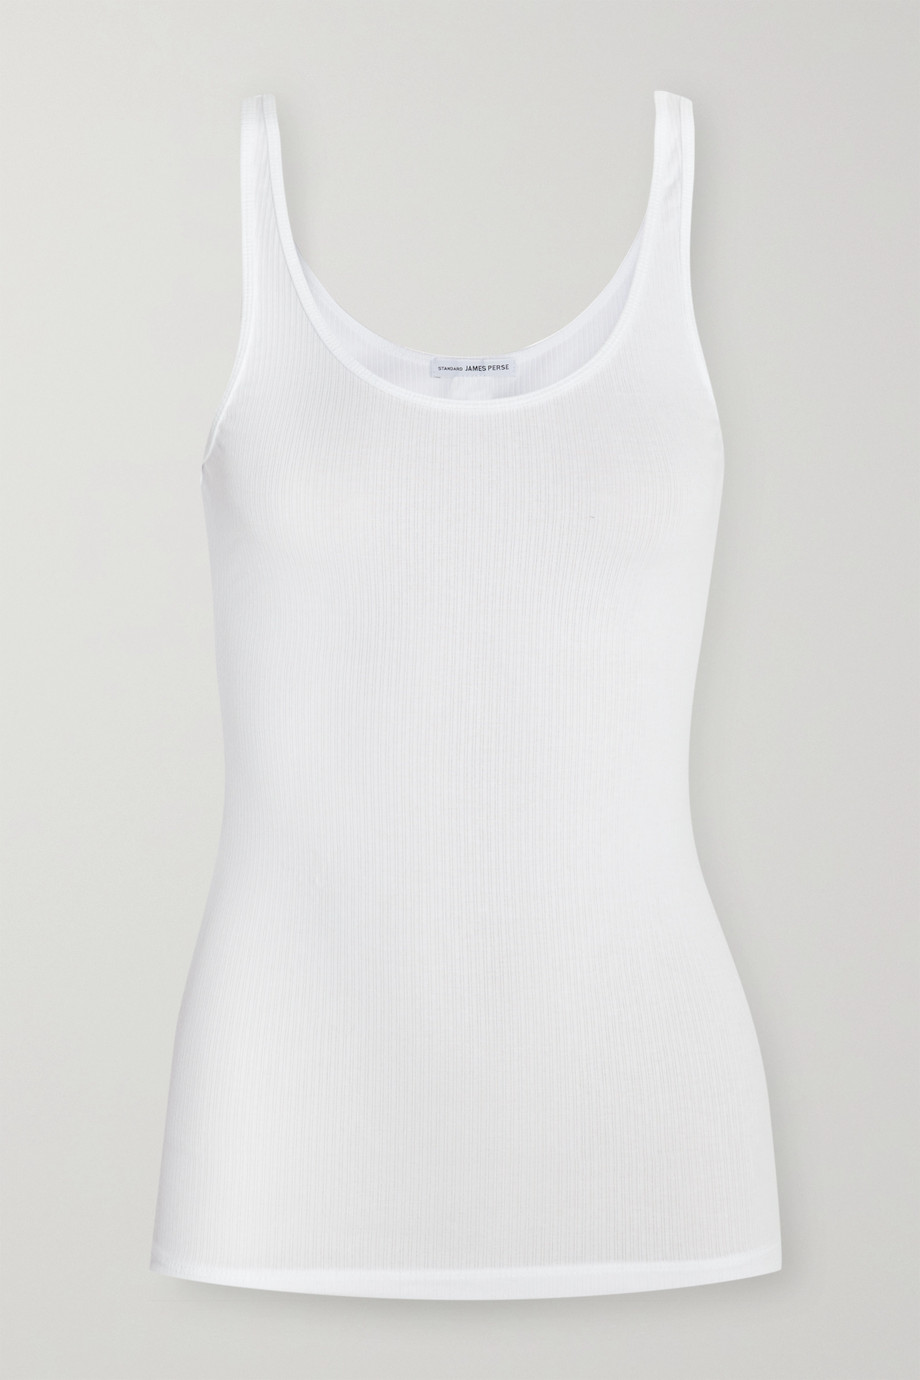 JAMES PERSE The Daily ribbed stretch-cotton tank